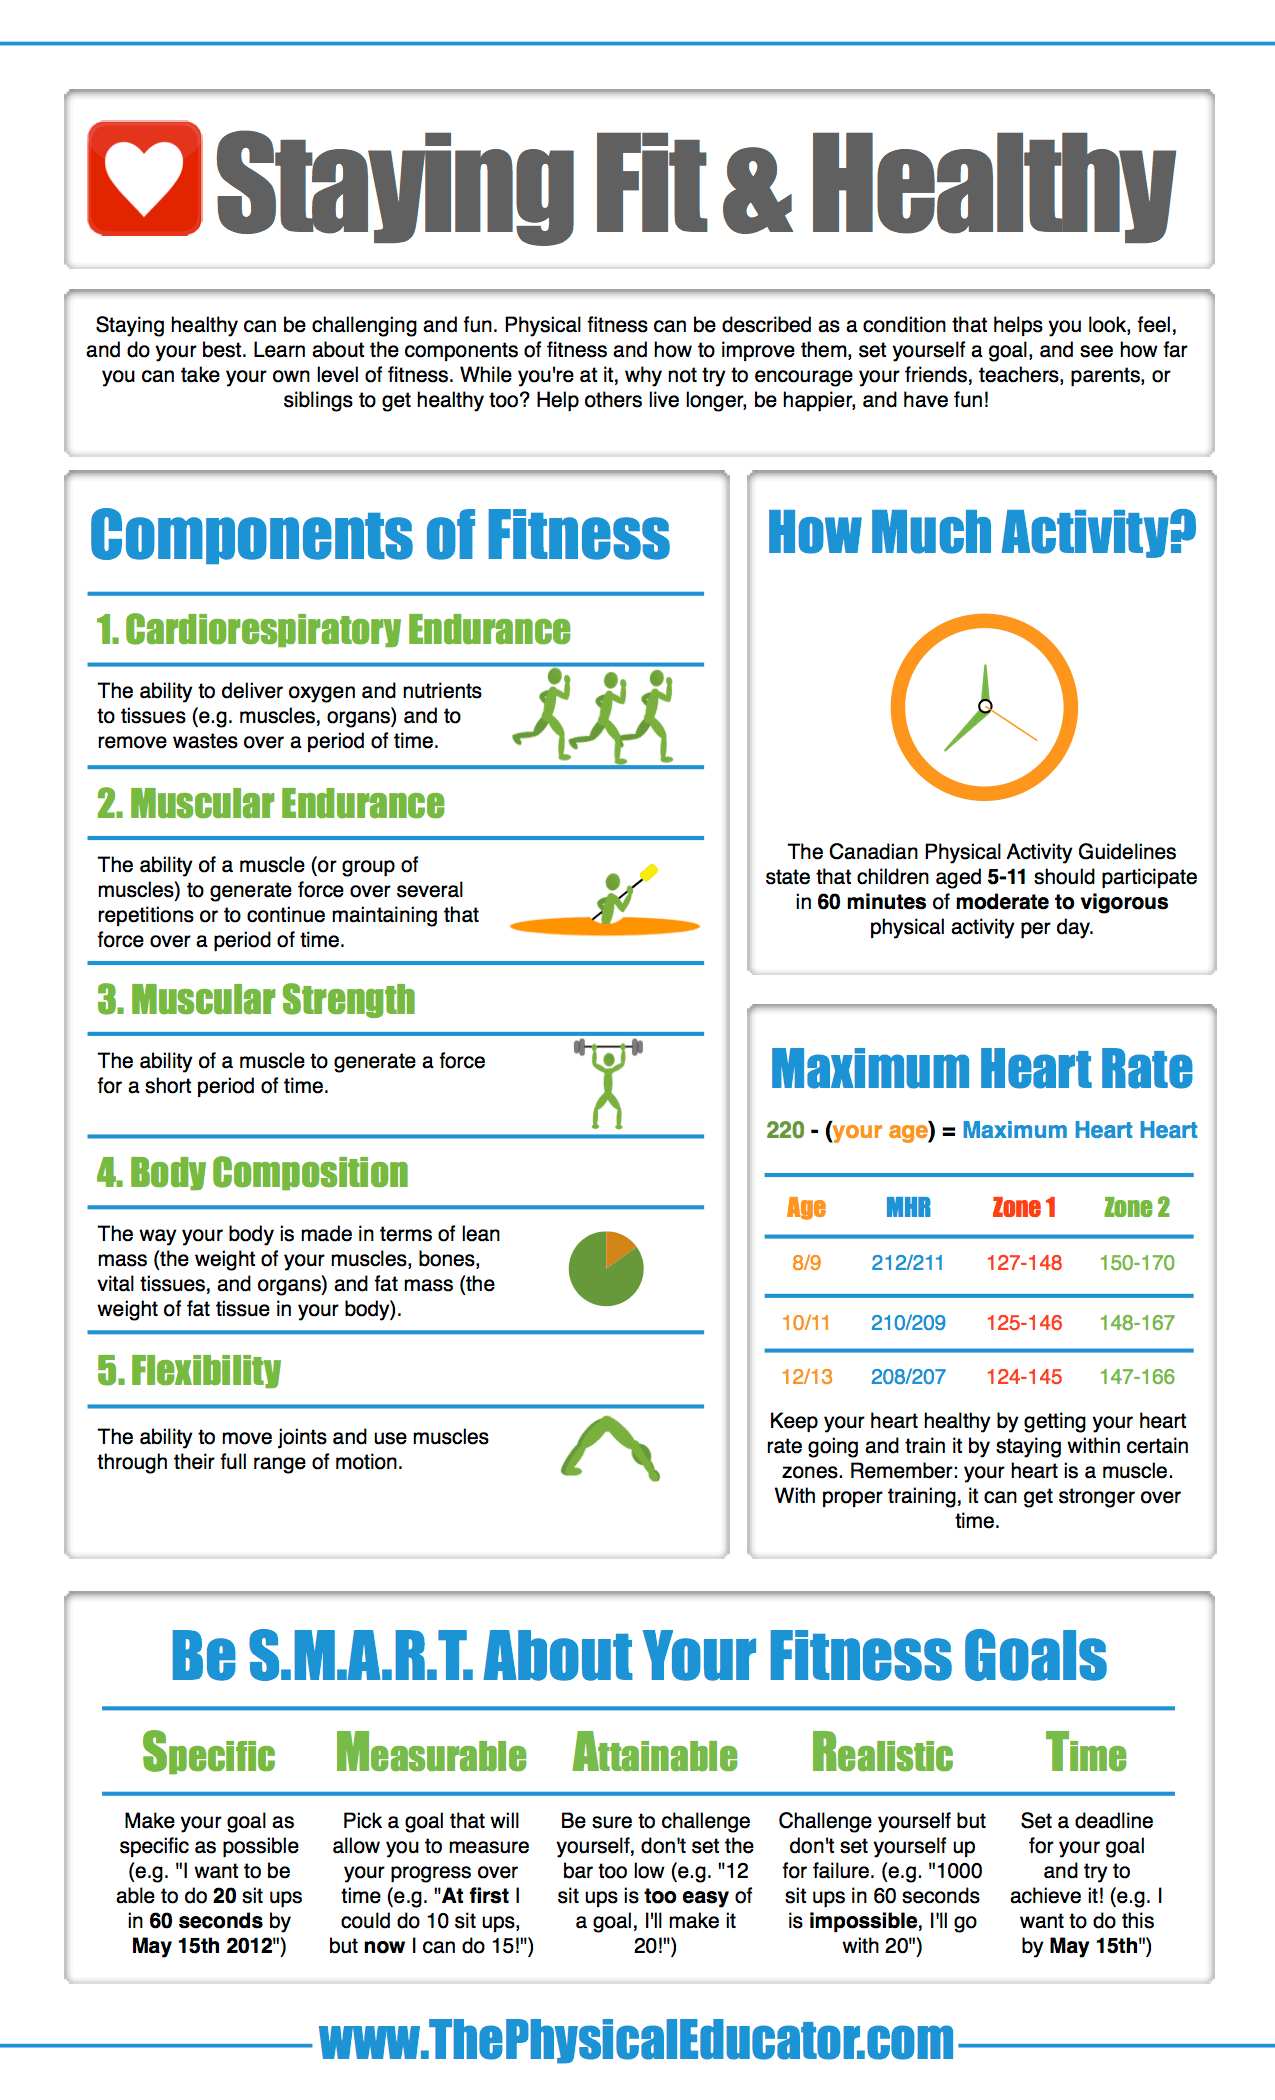 Teaching The Components Of Fitness